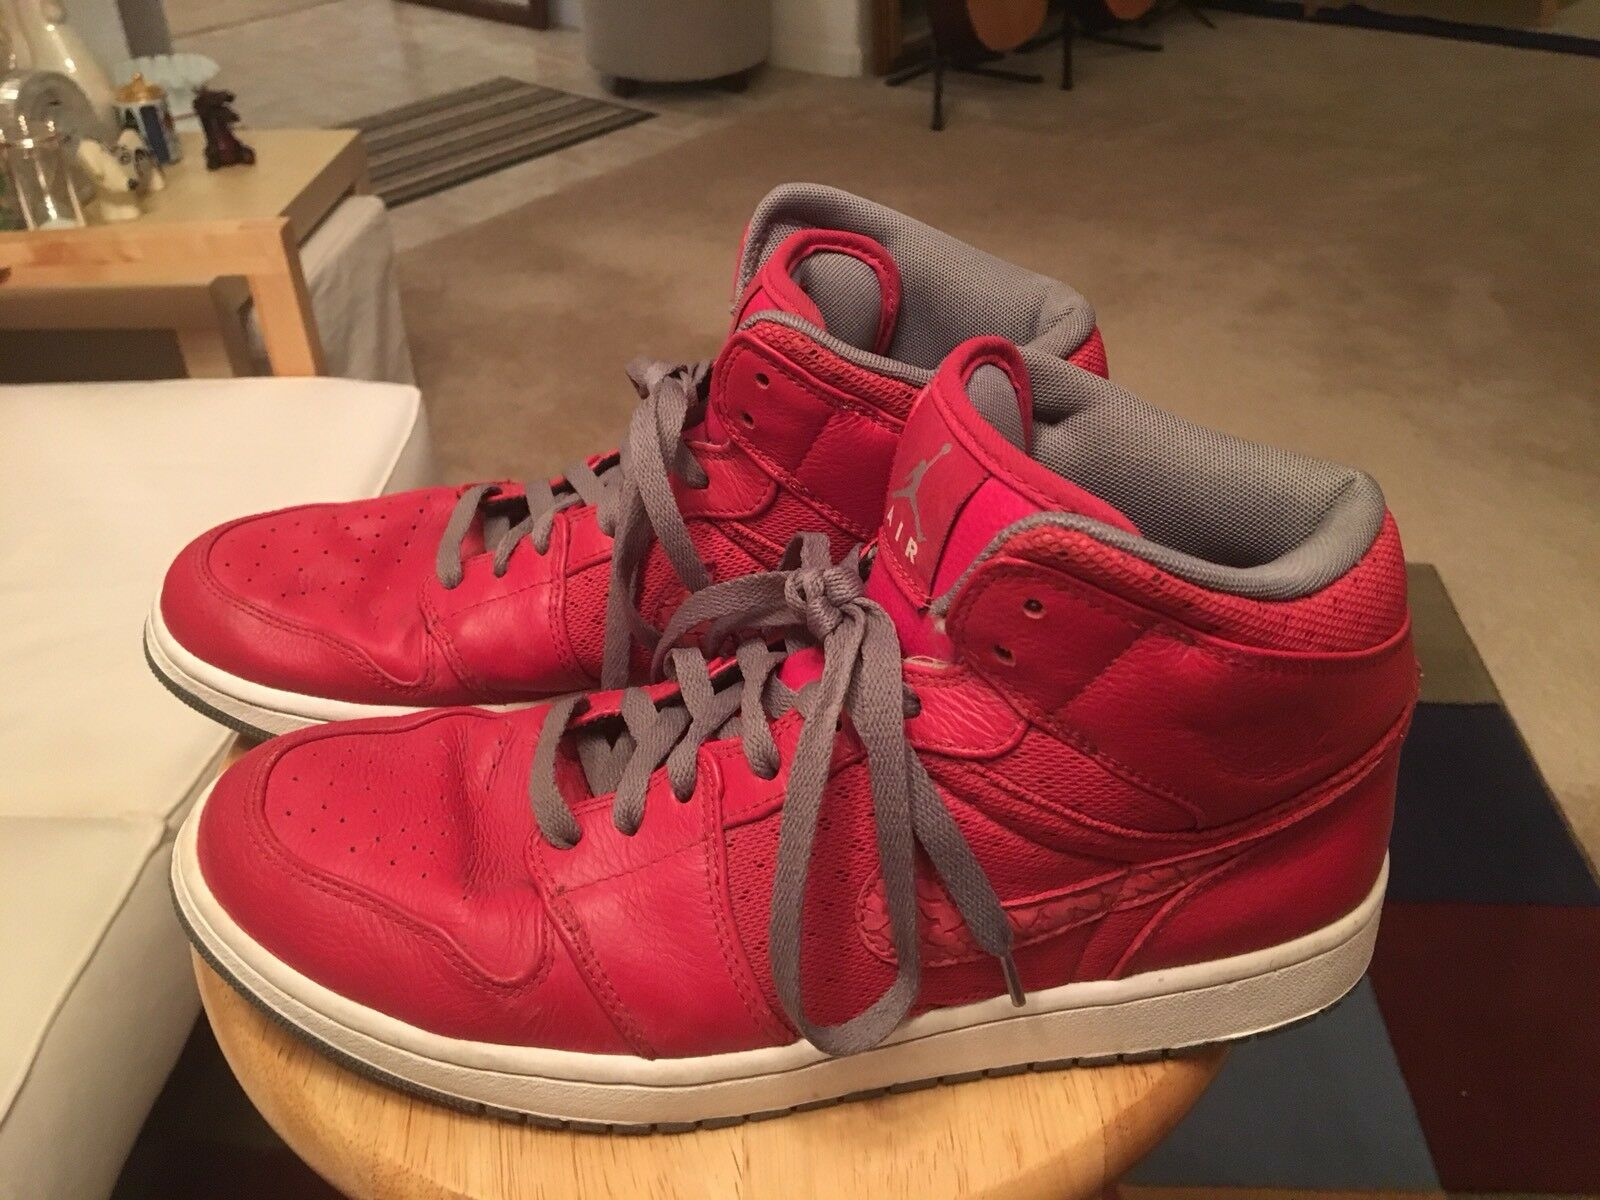 Nike Air Jordan Red/Grey & White Trim Mens US12 Leather Athletic Sneakers Shoes